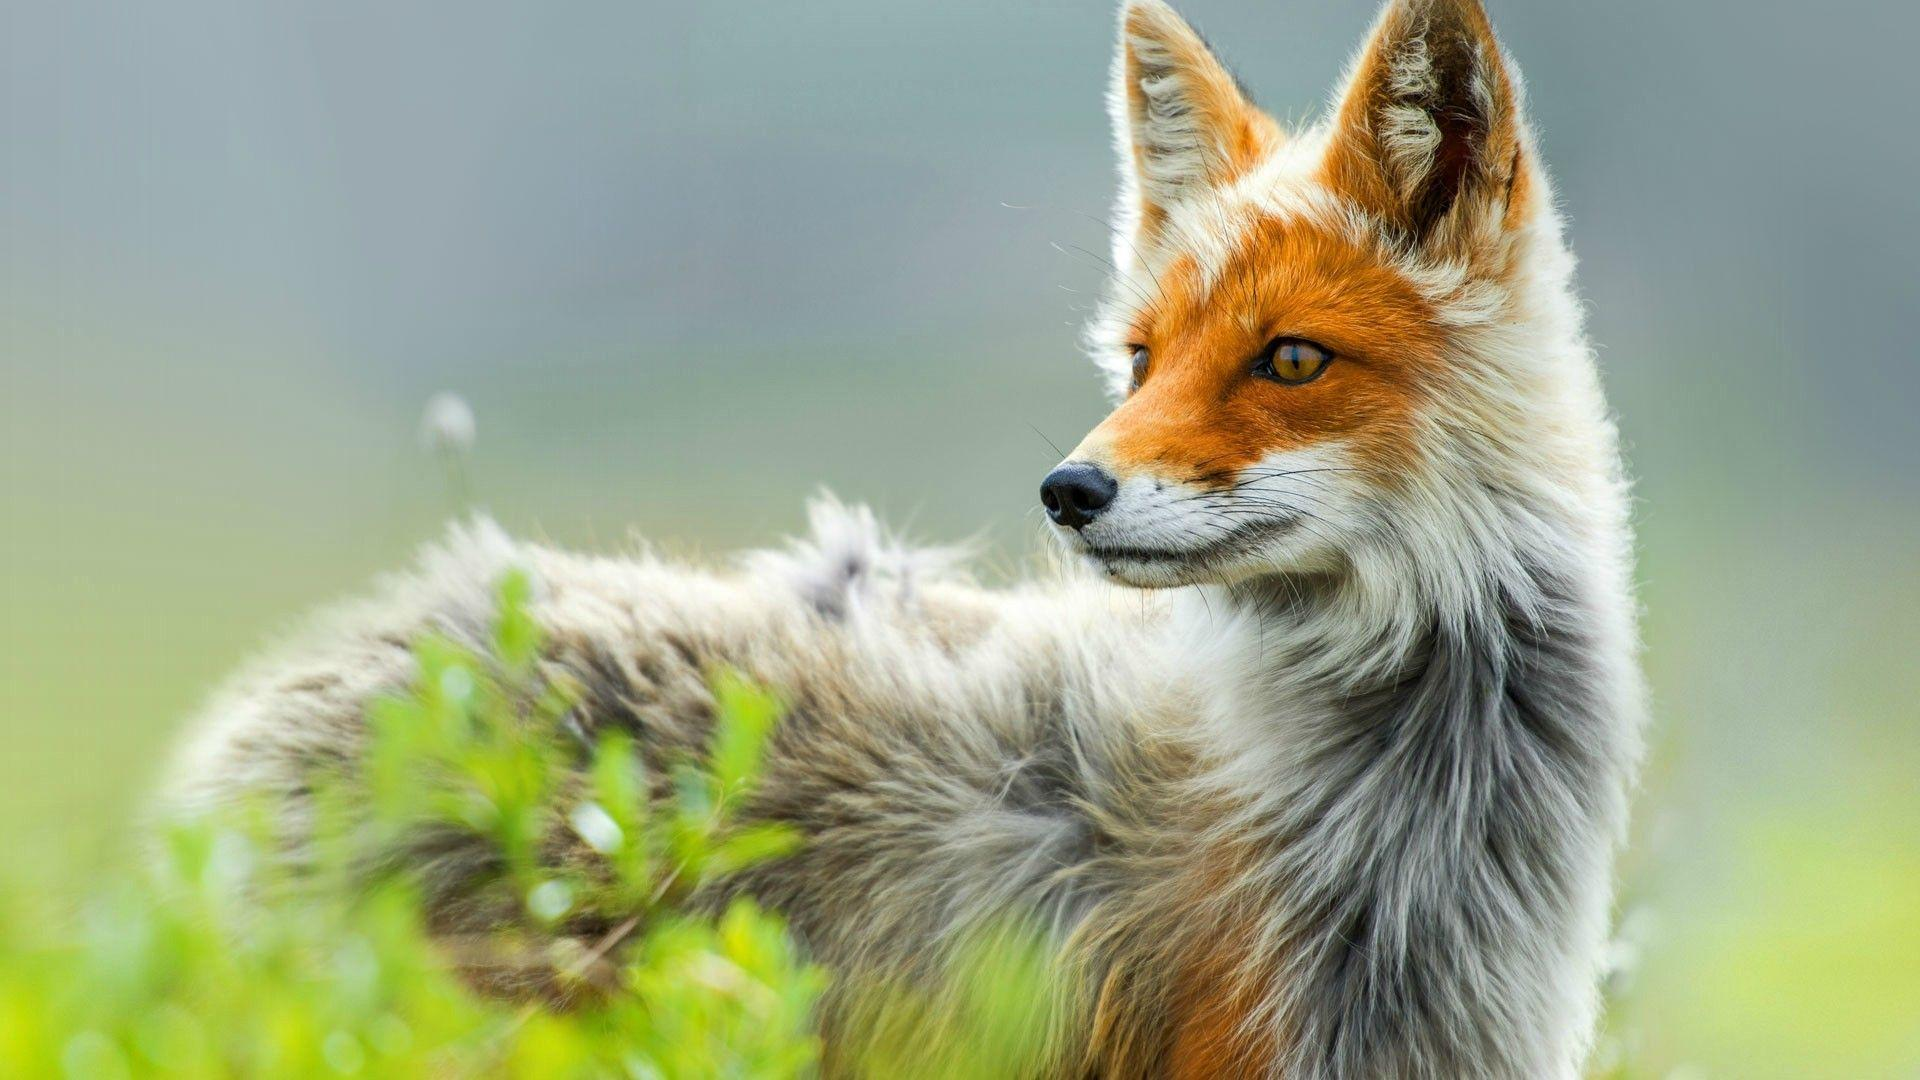 Red fox in Chukotka, Russia — Photo by Ivan Kislov : wallpapers